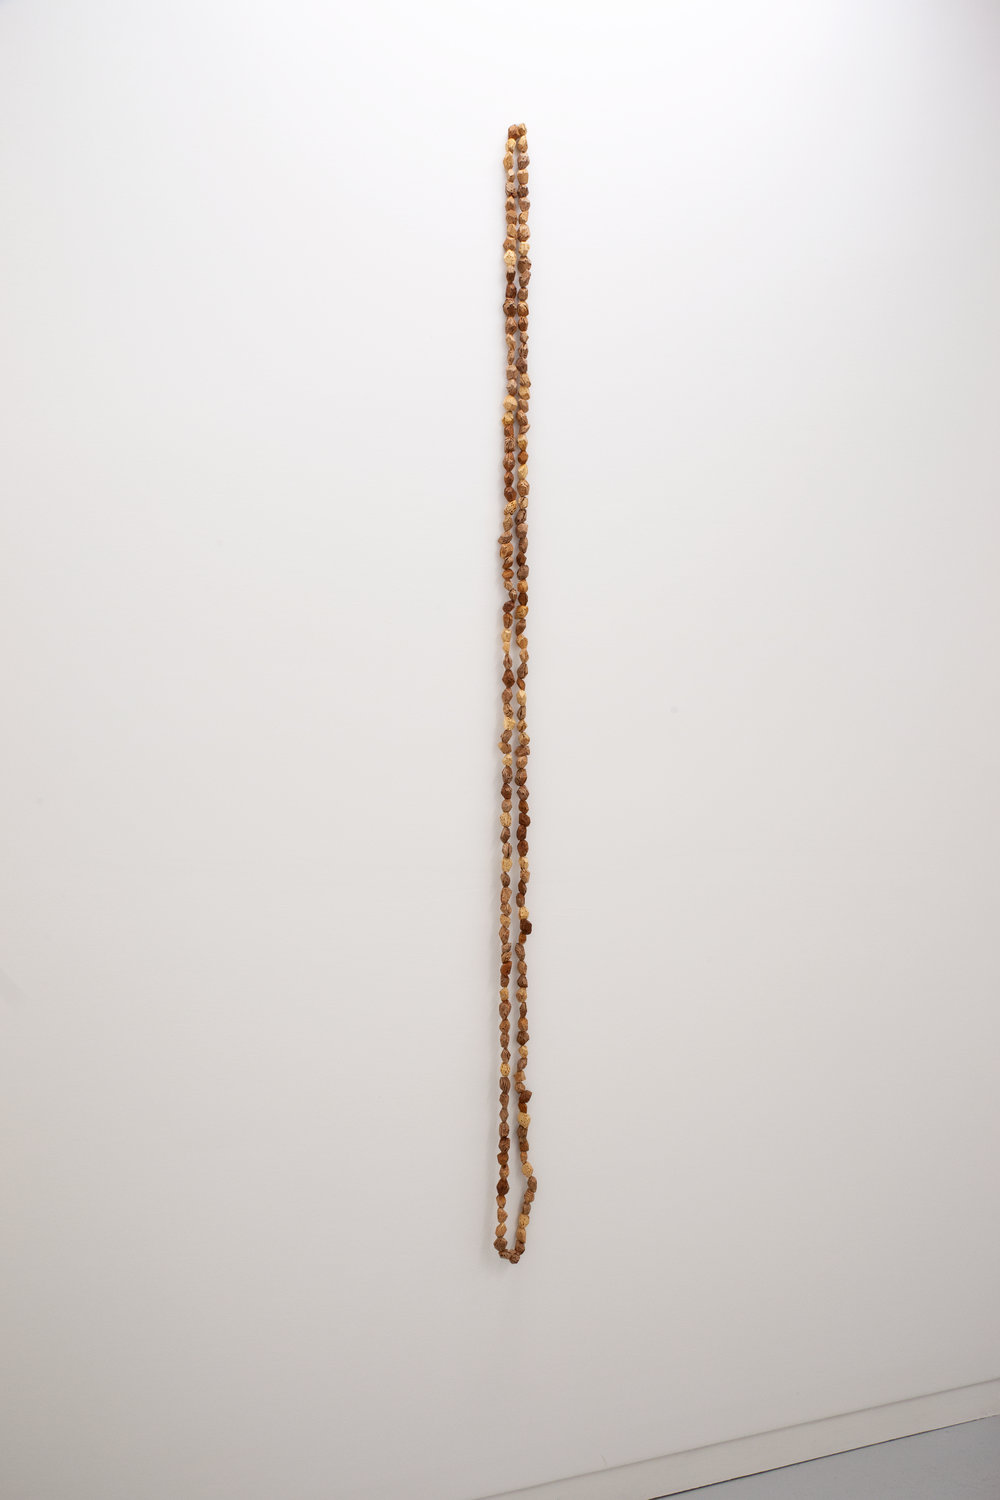 Elizabeth Atterbury,  Beads I , 2018, Peach Pits 77 x 1 x 1 in